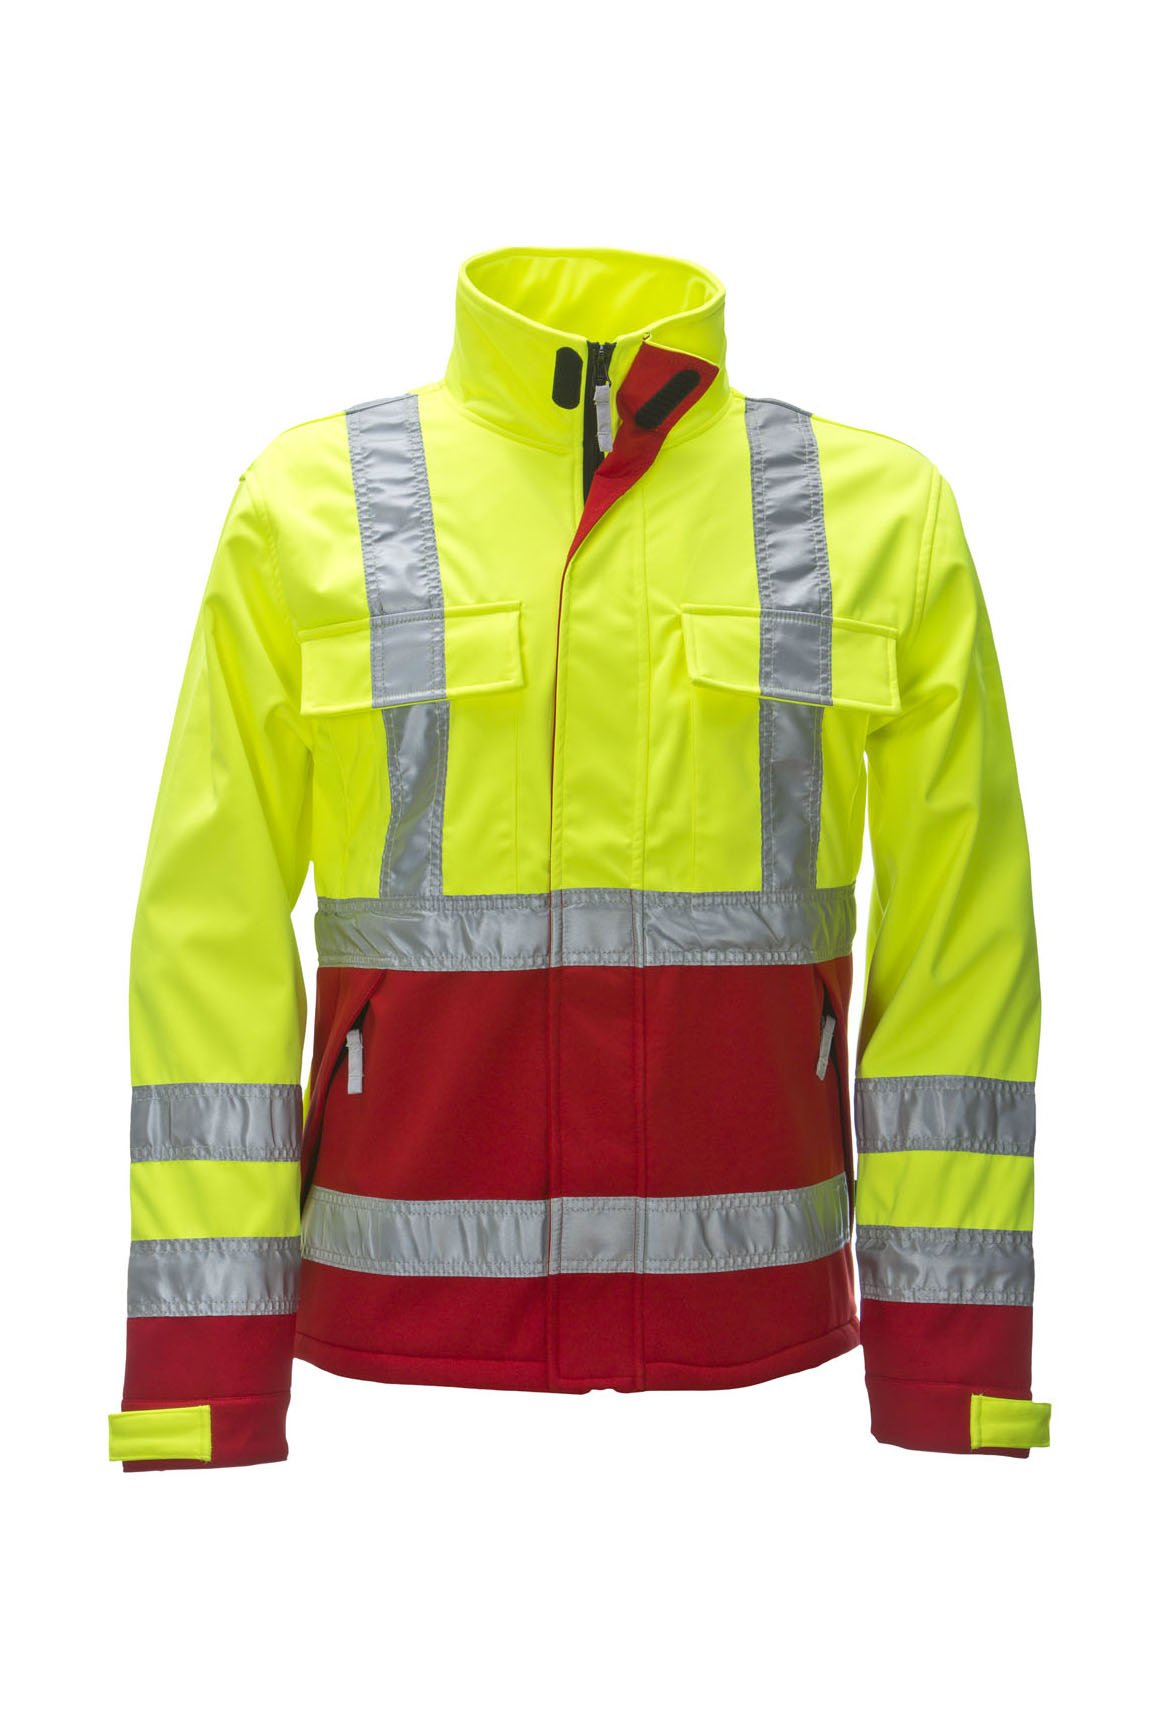 Warnschutz-Softshelljacke, fluorescent lemon/red, ISO 20471 Kl. 2